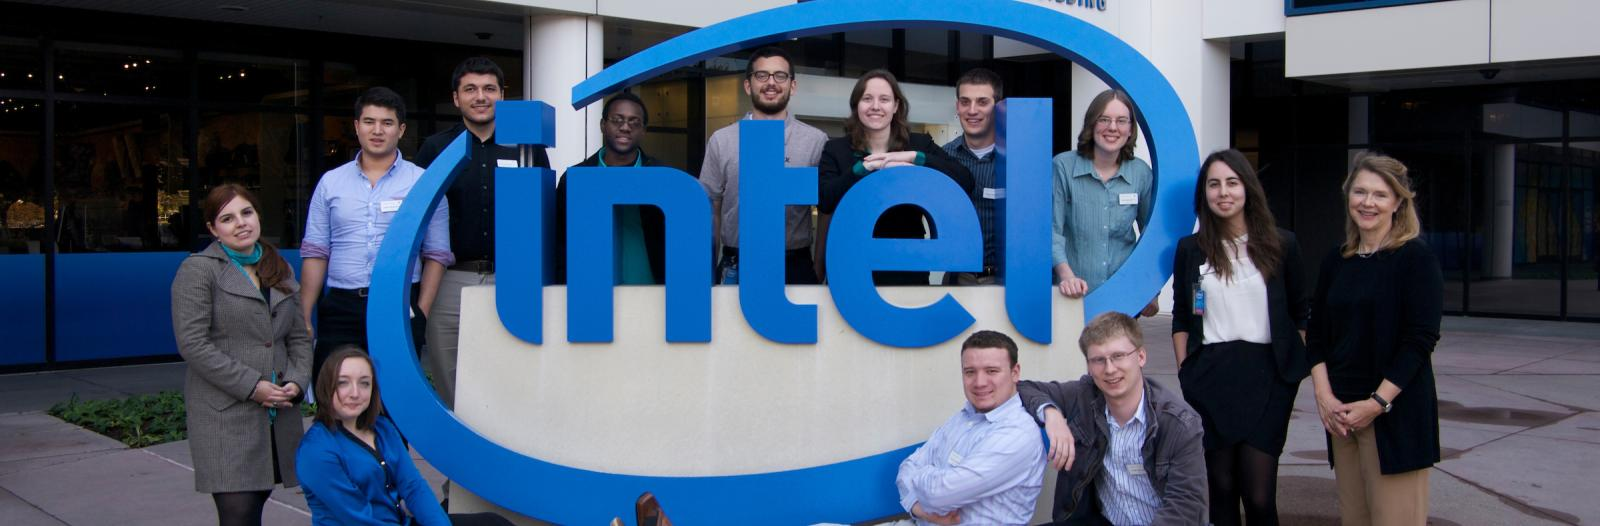 Students at the Intel corporate office